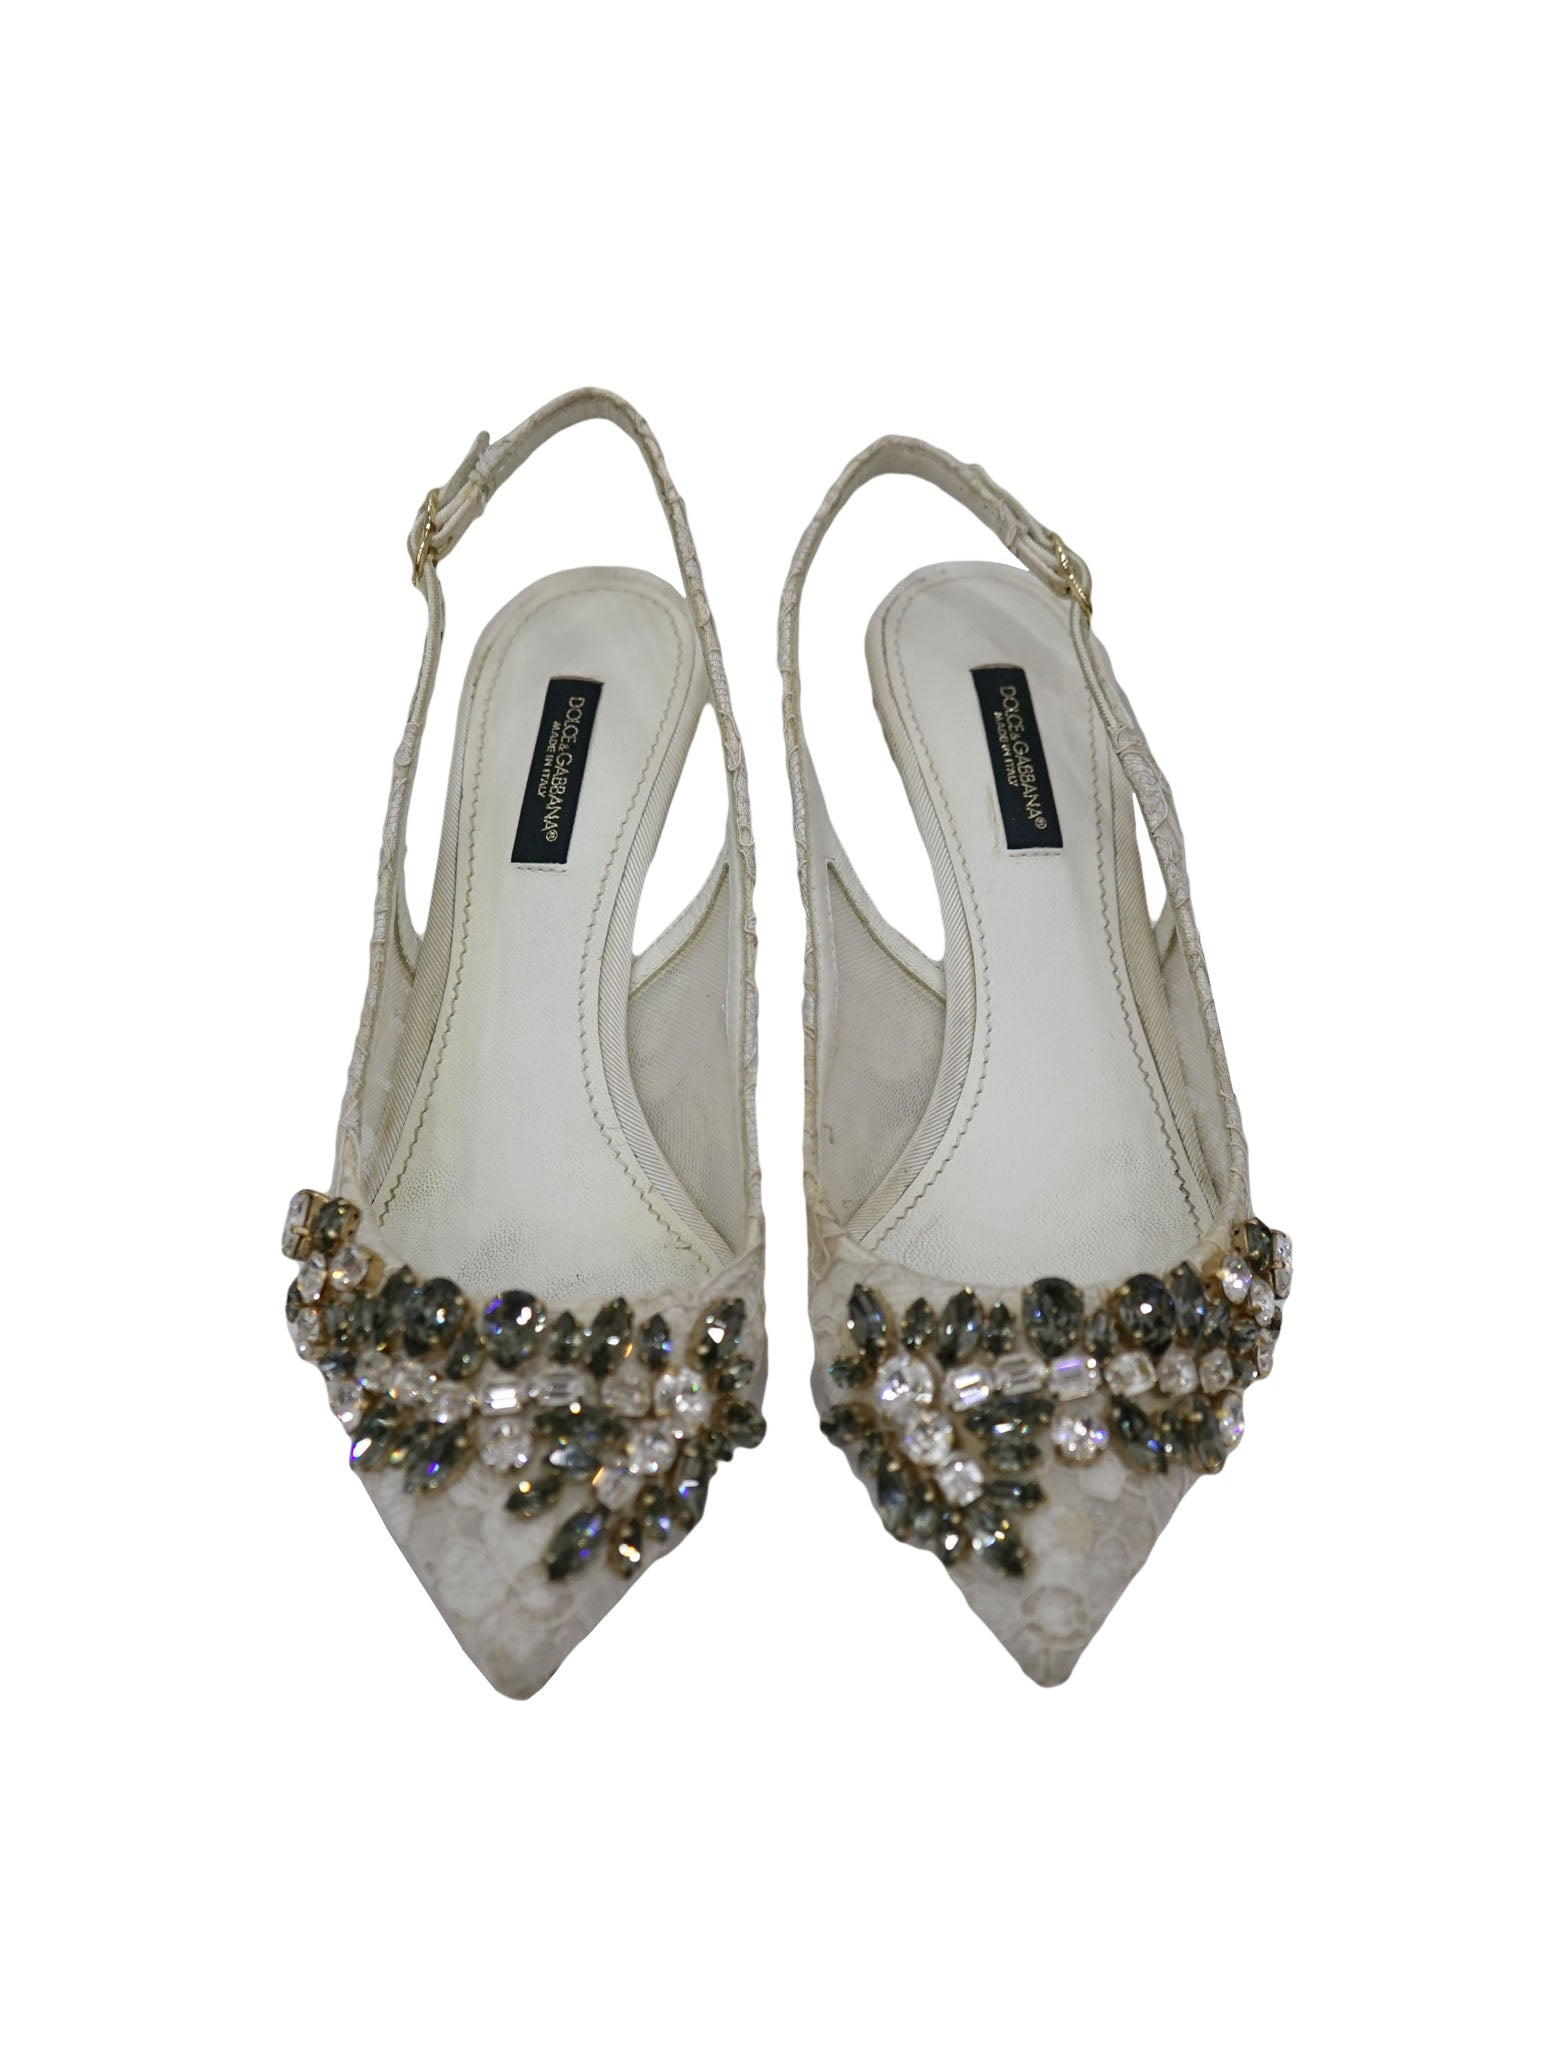 EMBELLISHED LACE POINTED TOE SANDALS